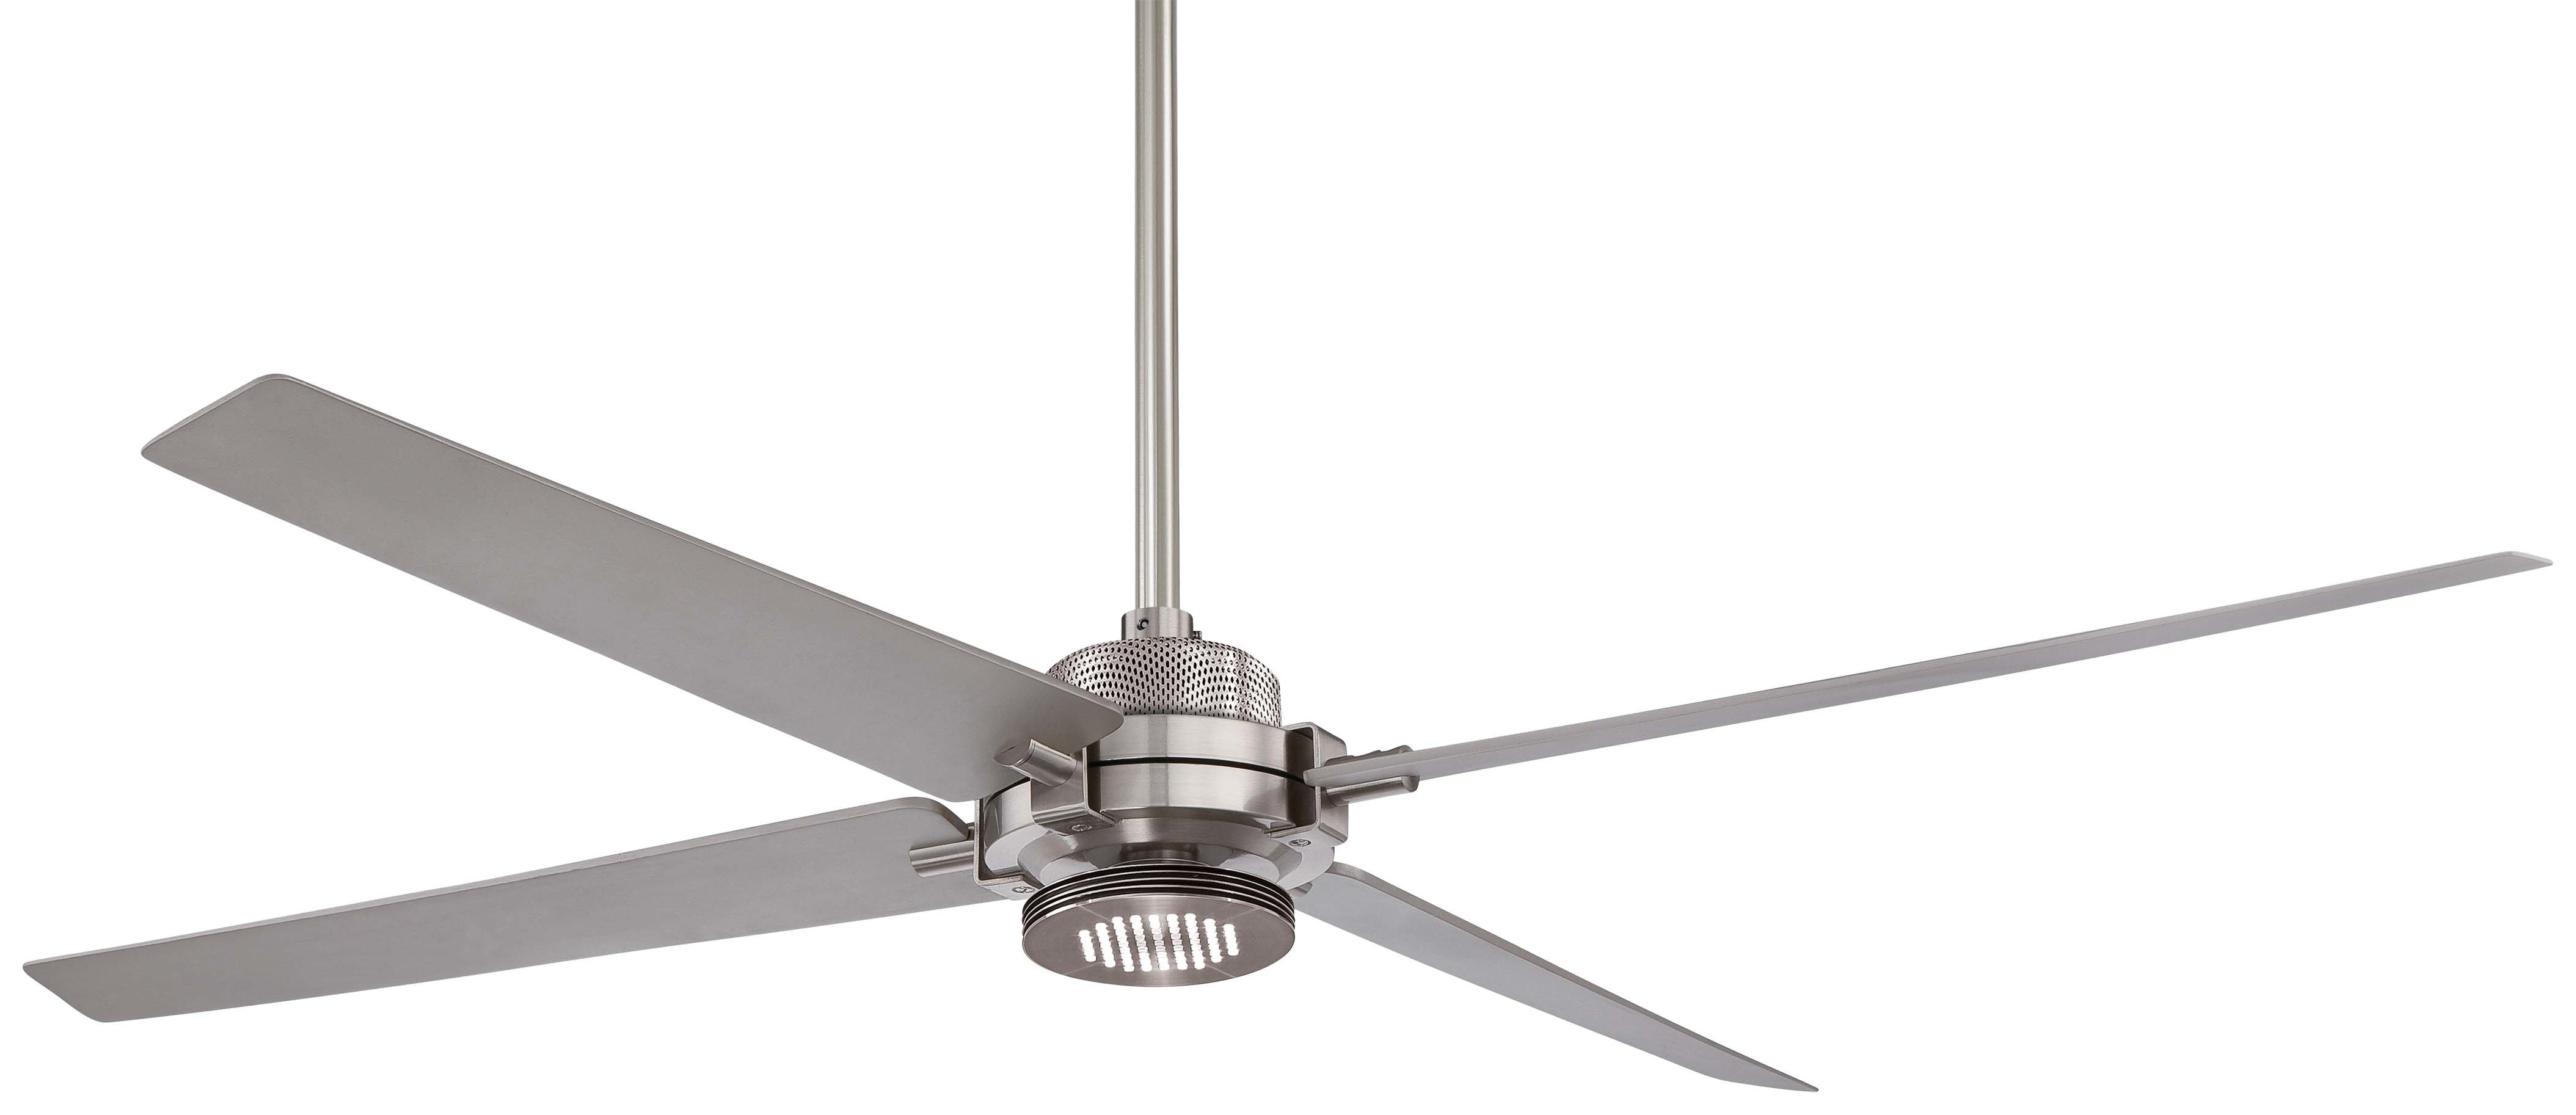 "Raptor 5 Blade Ceiling Fans With Most Recently Released 60"" Spectre 4 Blade Led Ceiling Fan With Remote, Light Kit Included (View 18 of 20)"